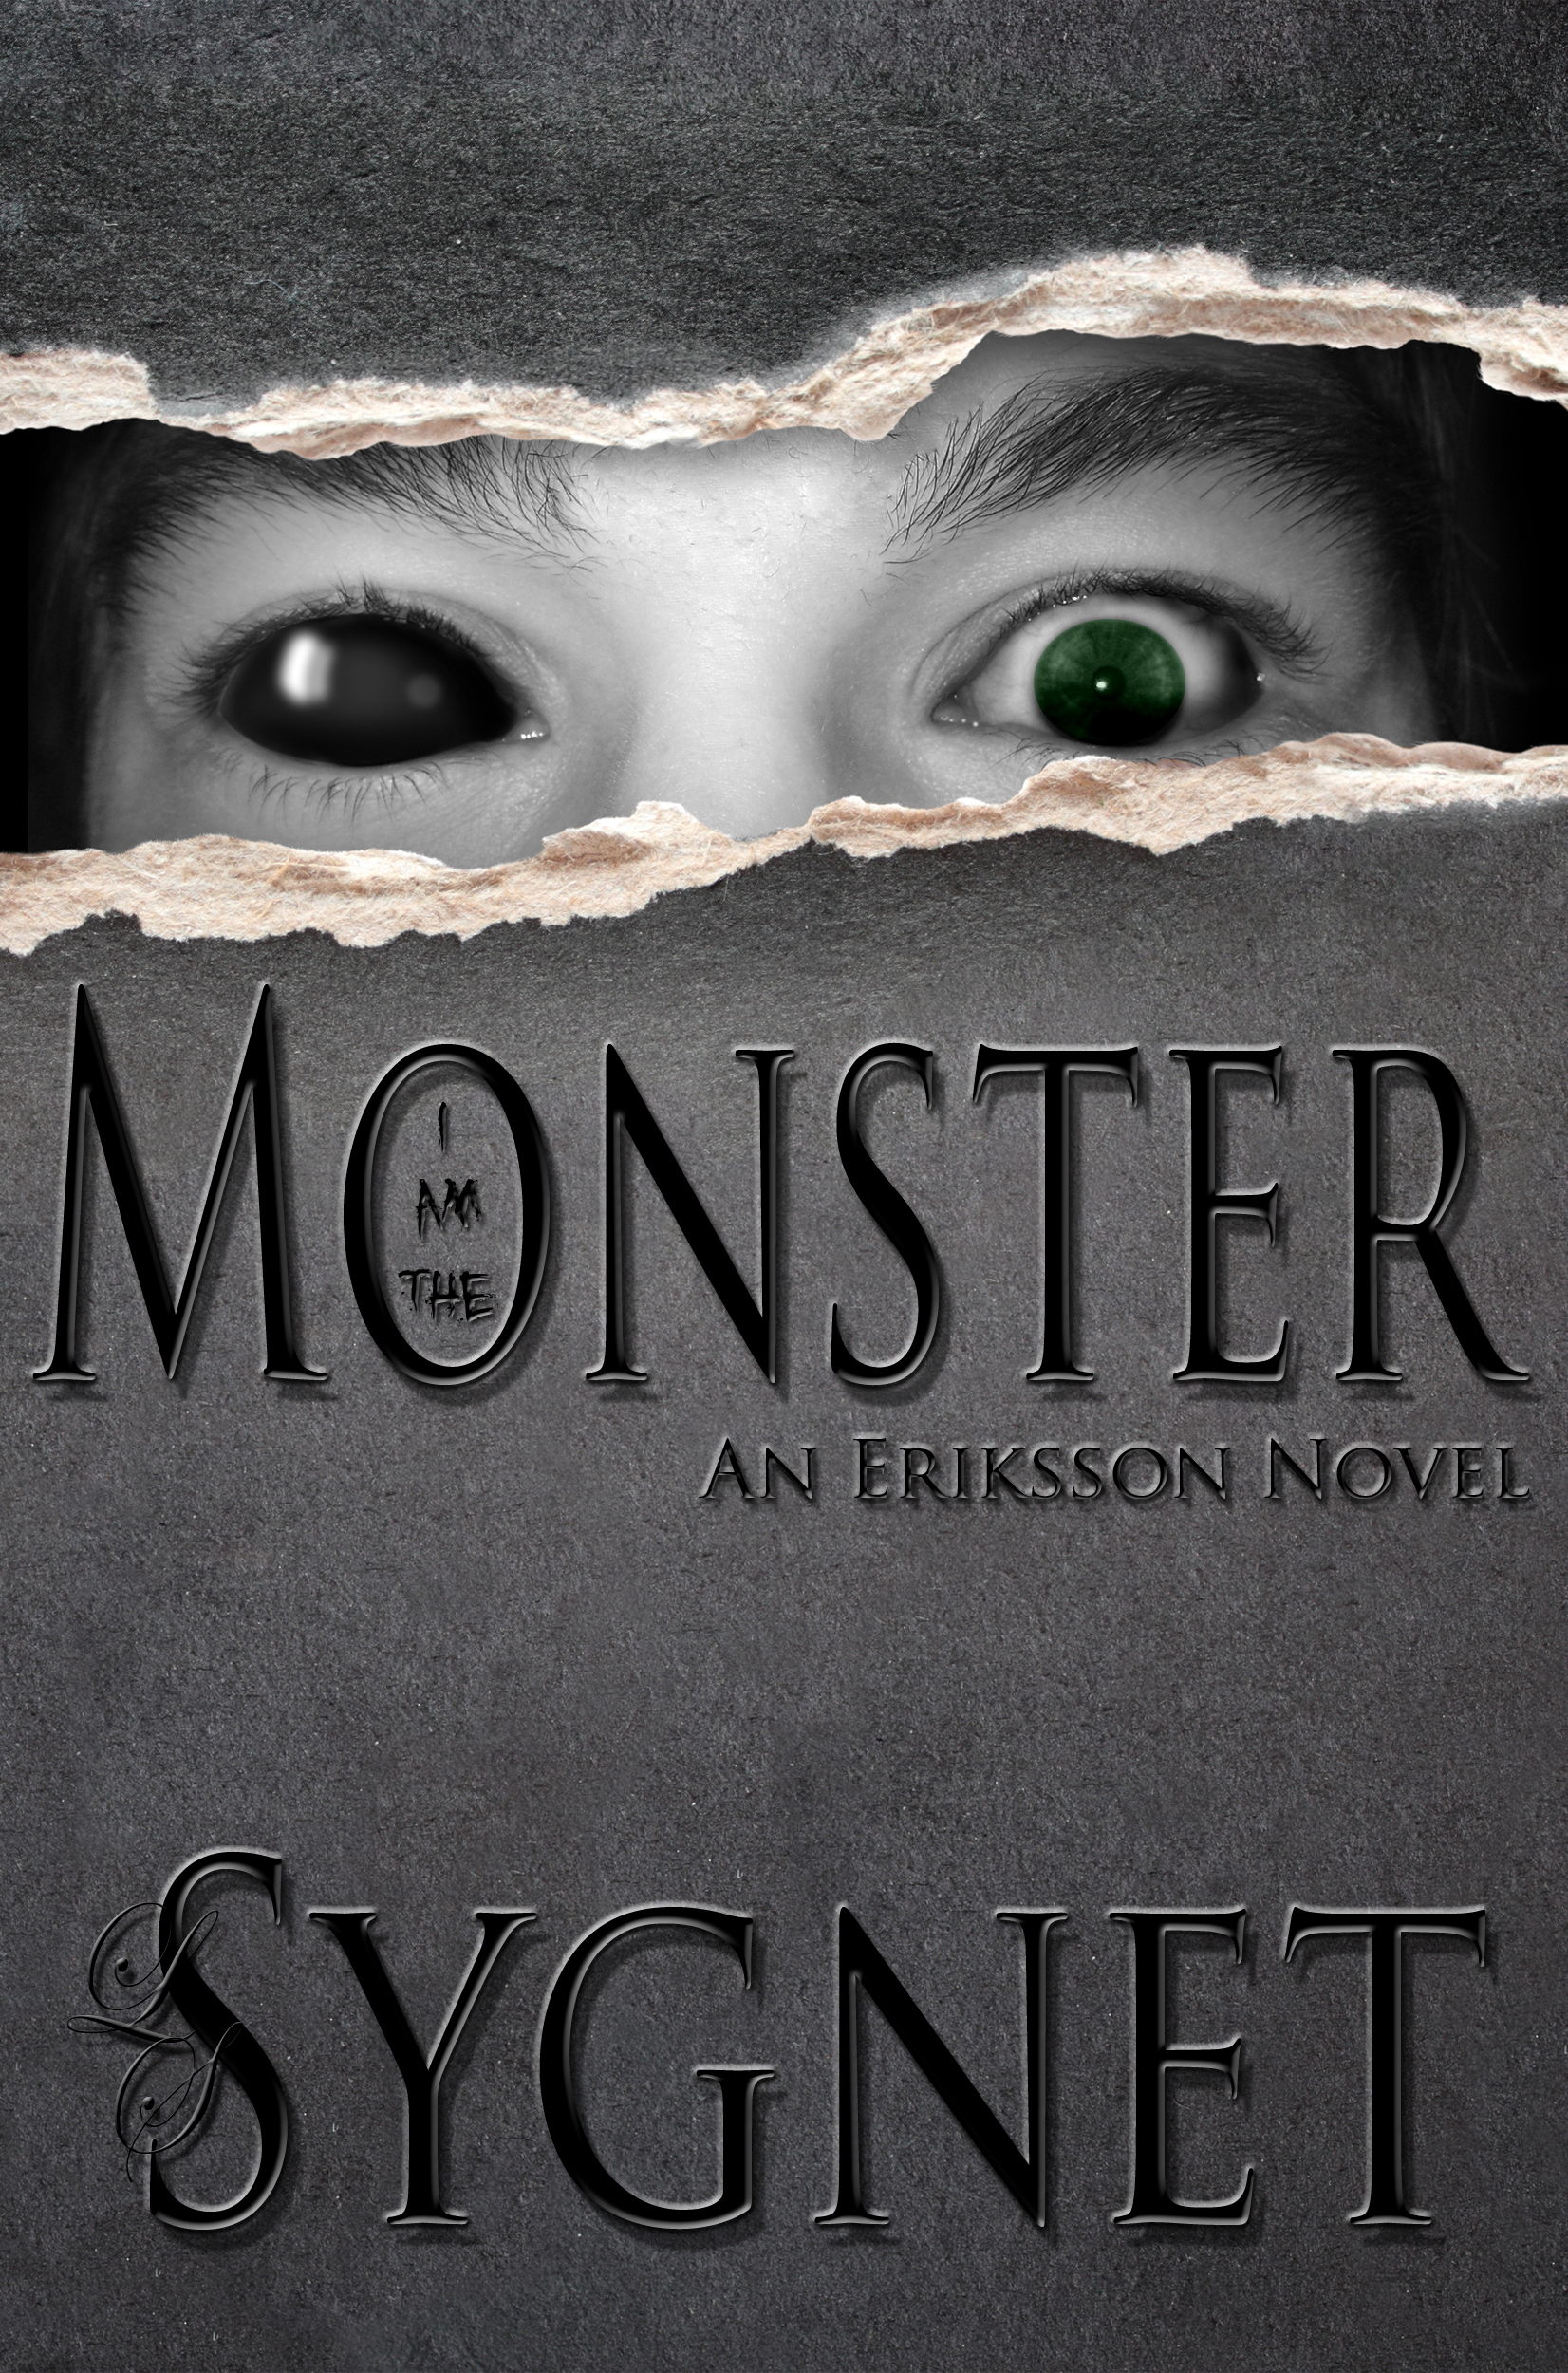 I Am the Monster LS Sygnet